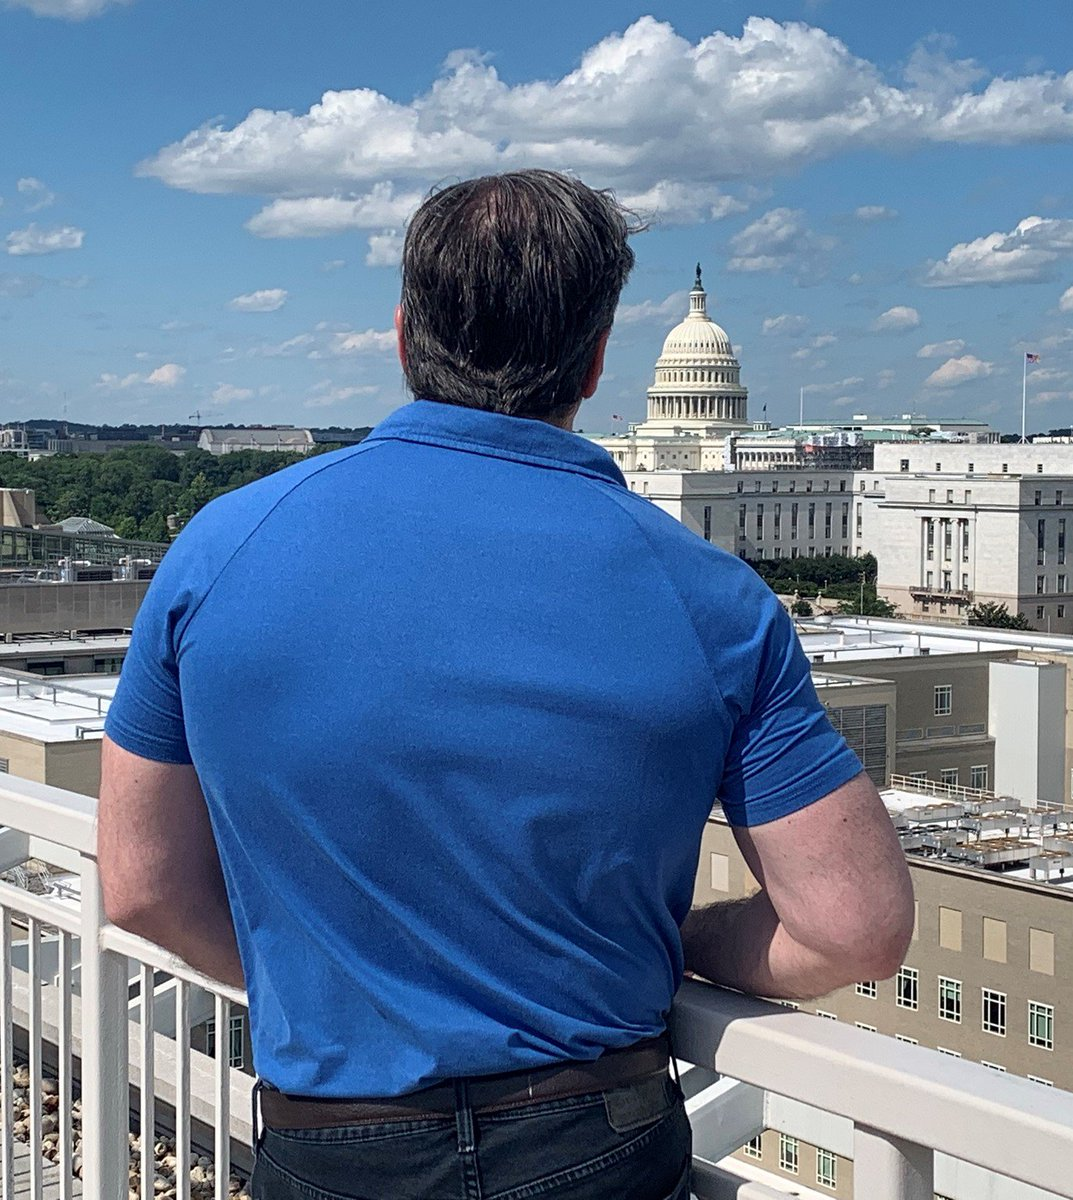 WAITING: As House Dems and Mueller continue coup collusion against @RealDonaldTrump, still waiting for Substantial DOJ action on #Spygate Declassification of Spygate docs Reopening of Clinton email investigation Meanwhile, @JudicialWatch does the heavy lifting w/ 50+ suits.